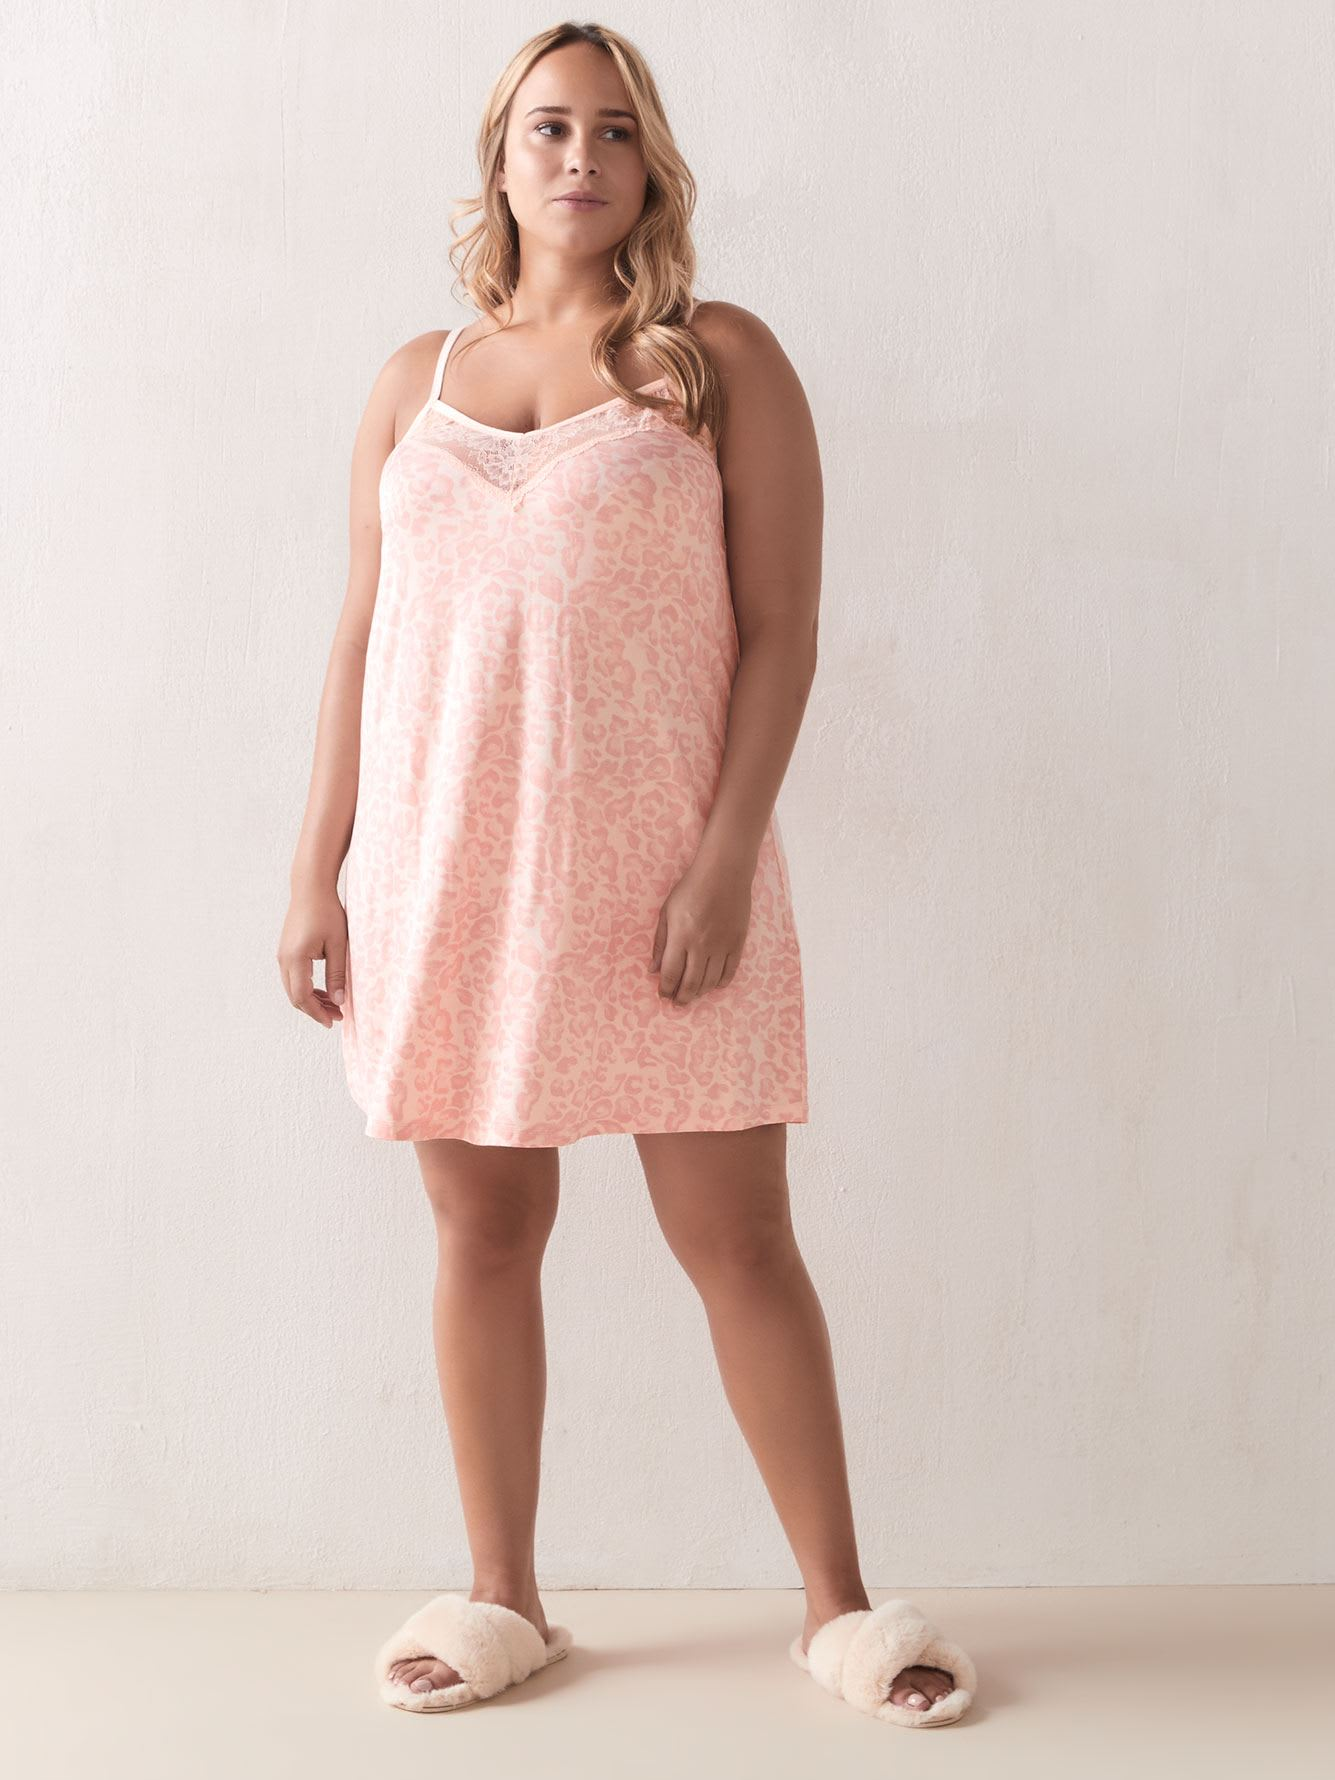 Printed Babydoll with Lace Insert - Addition Elle